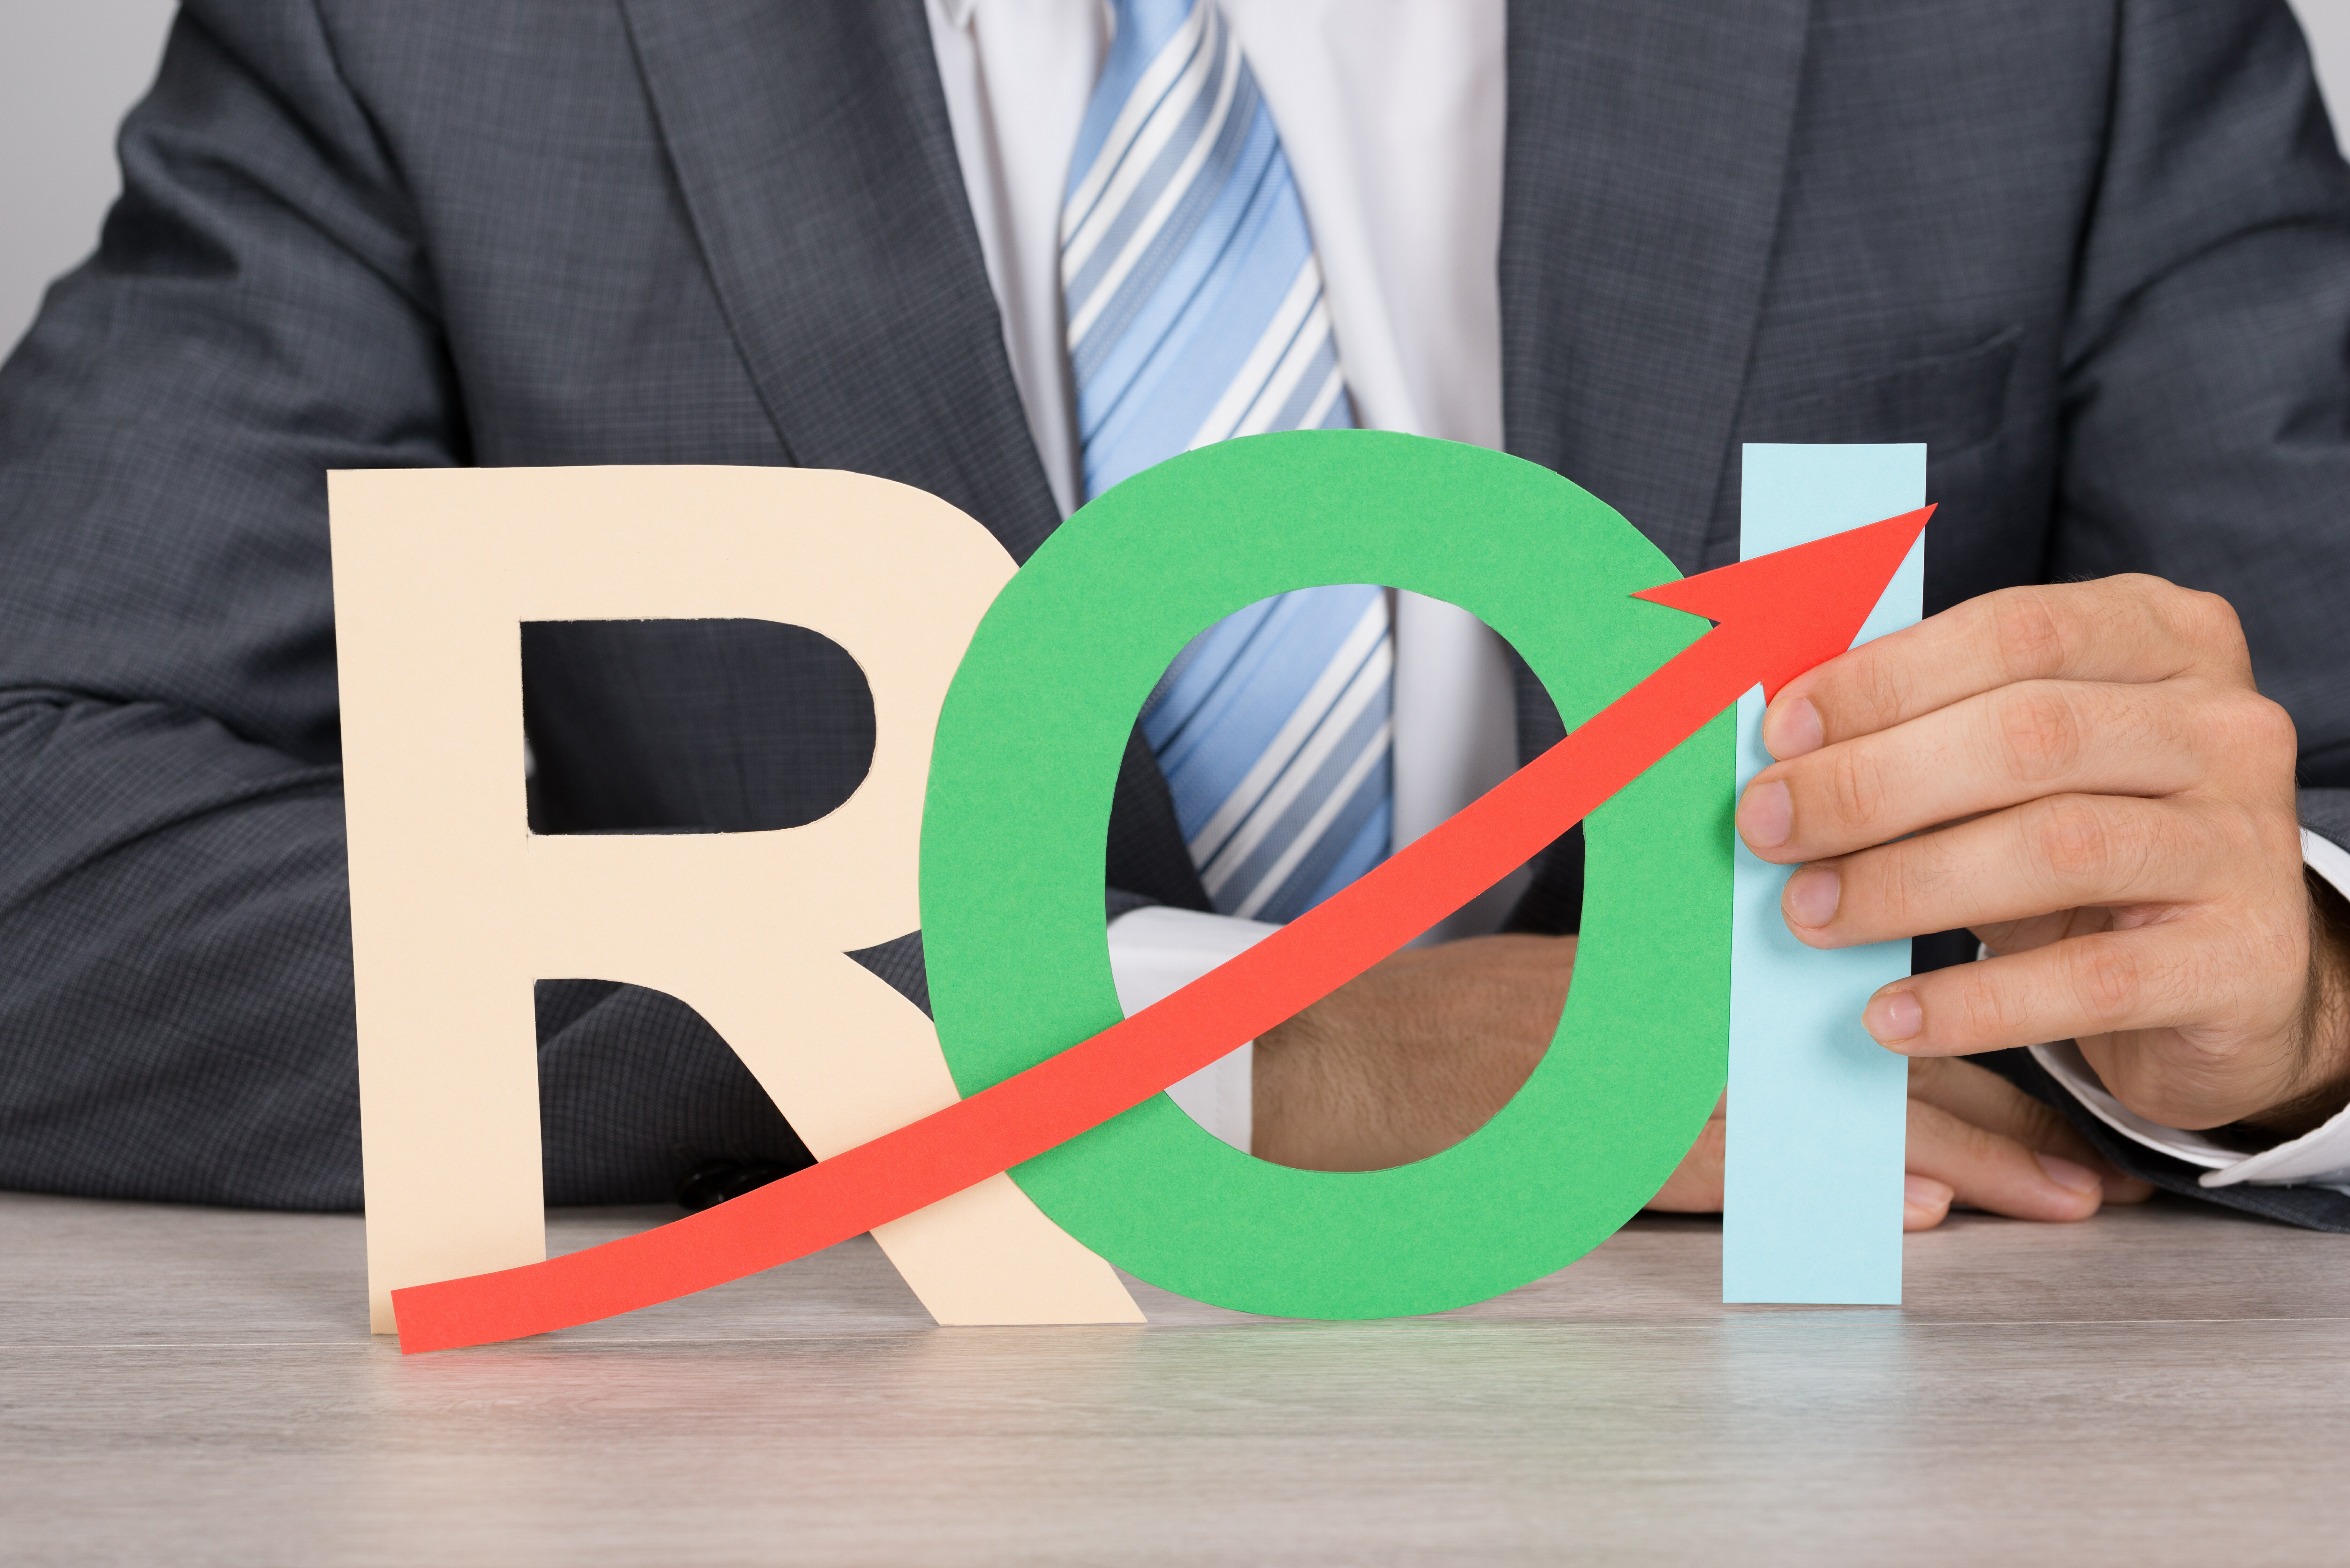 bigstock Businessman Holding Roi With U 77090189 What's Trending for Mainframes?